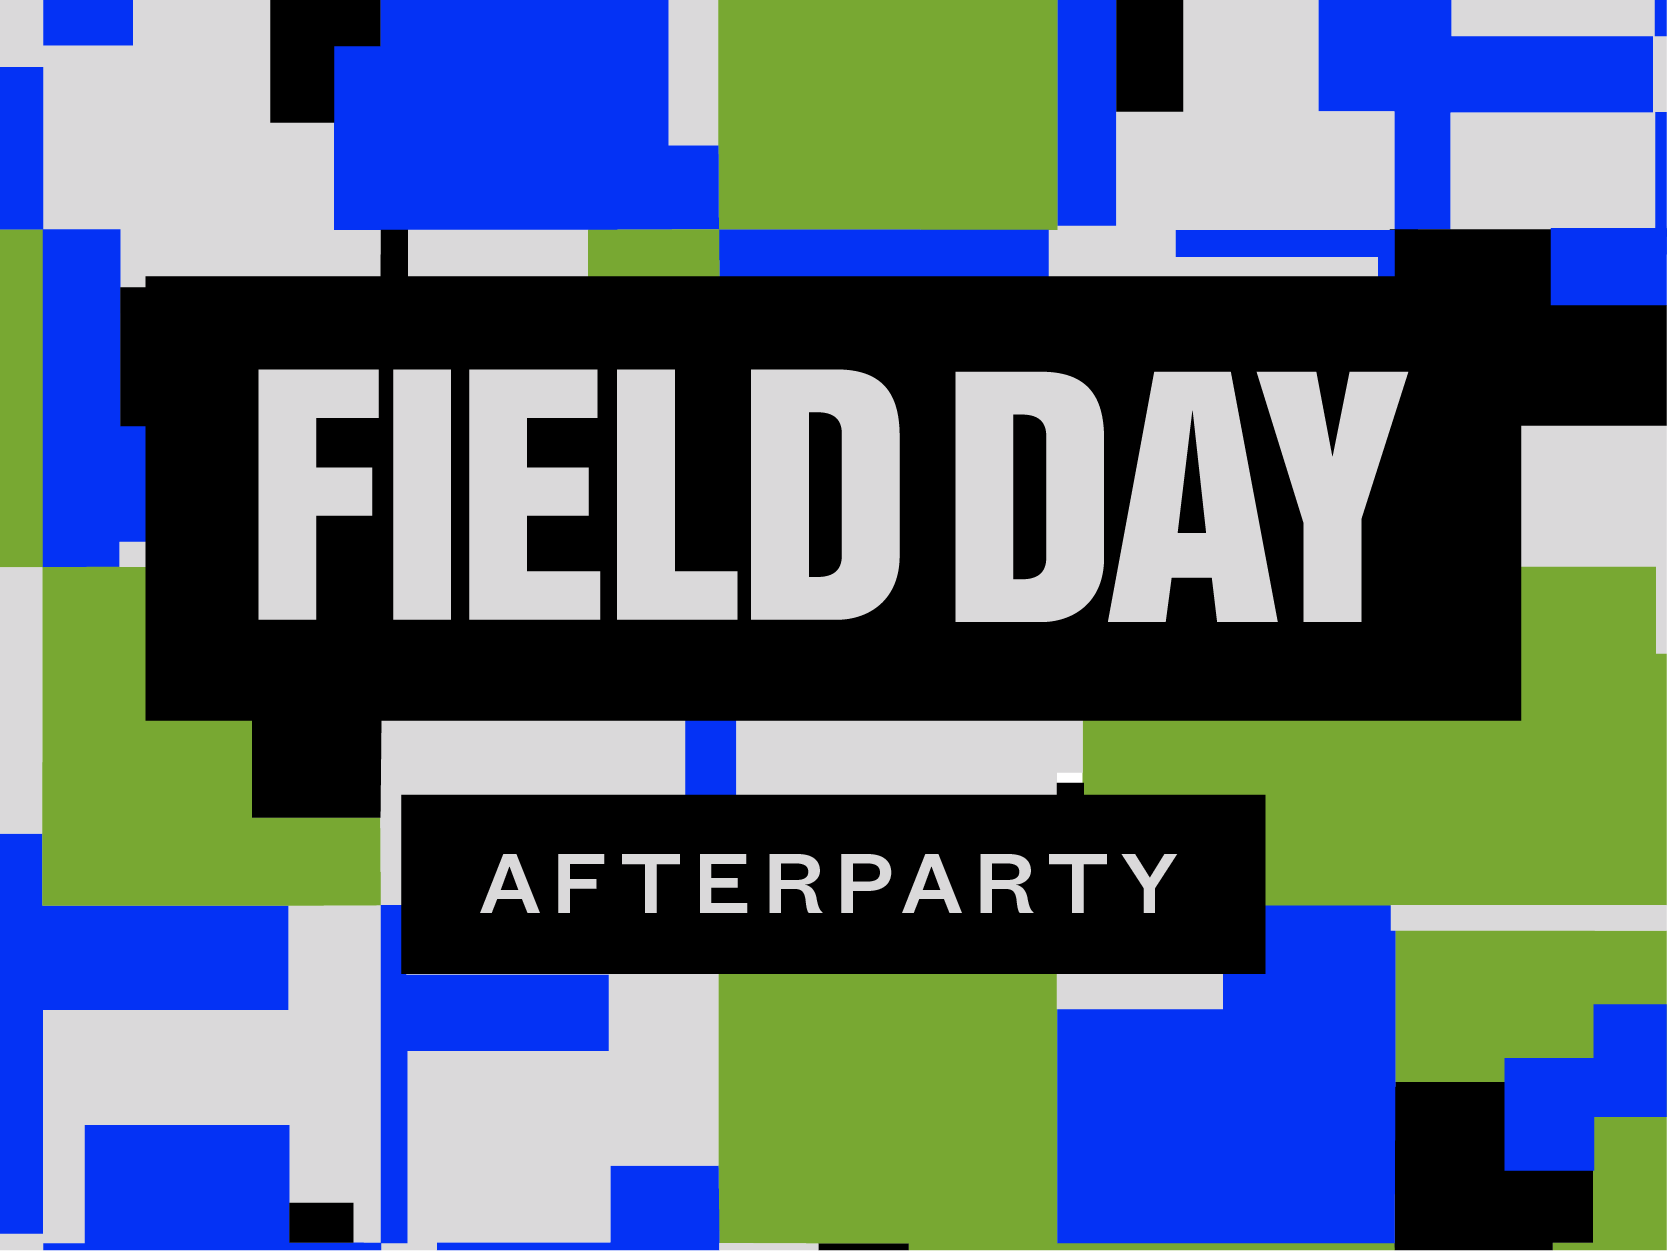 Field Day Afterparty